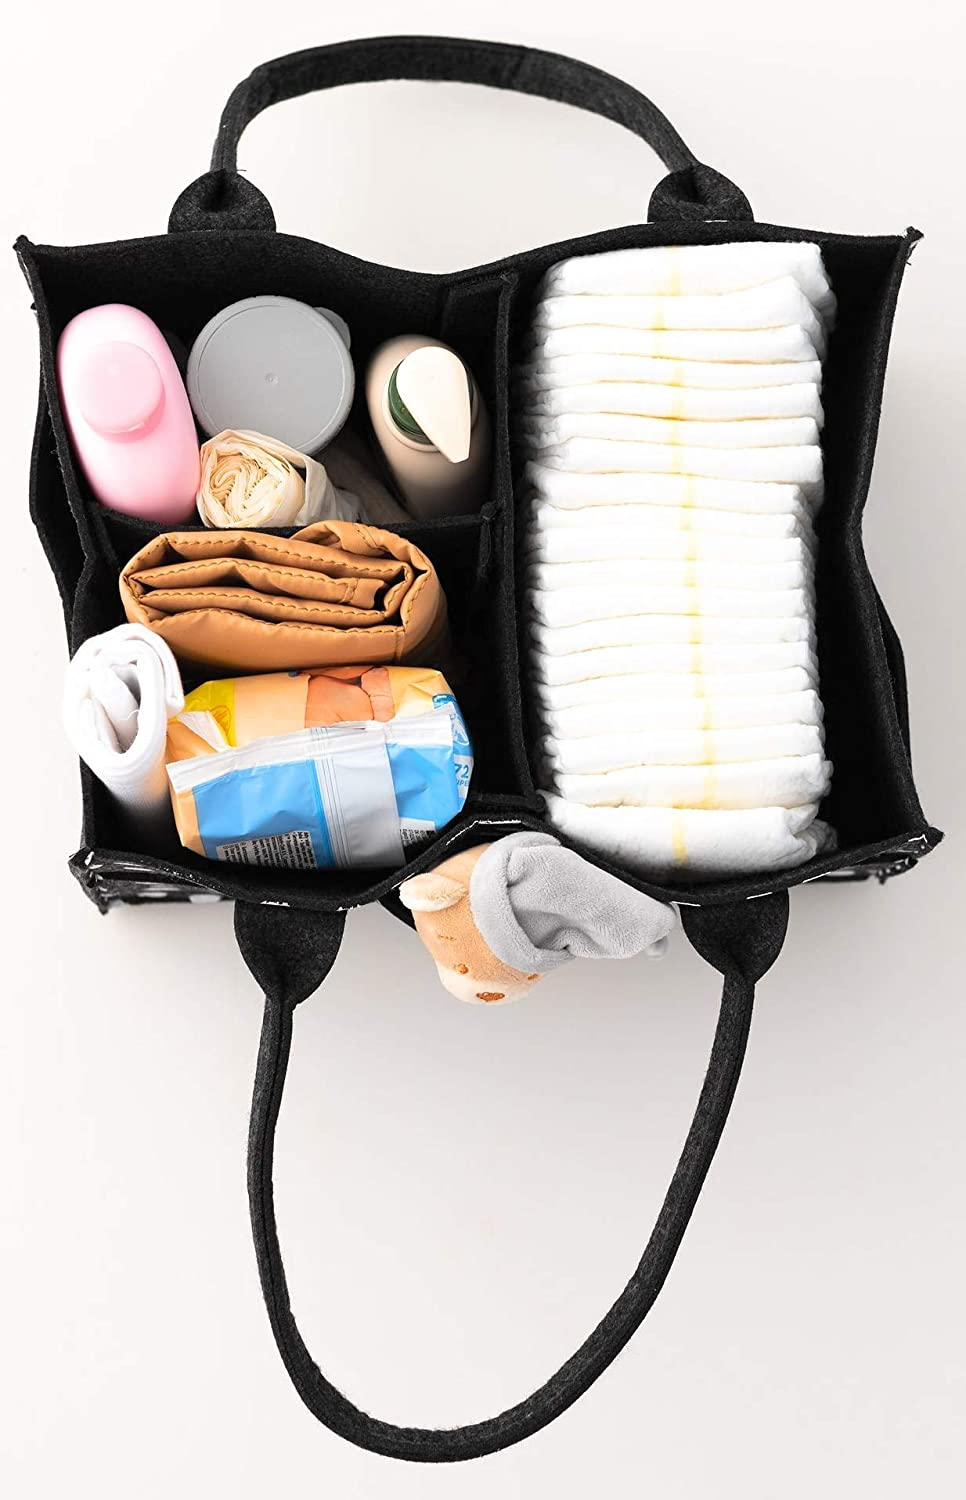 Portable Diaper Storage Basket Nappy Caddy Organiser Several Compartments